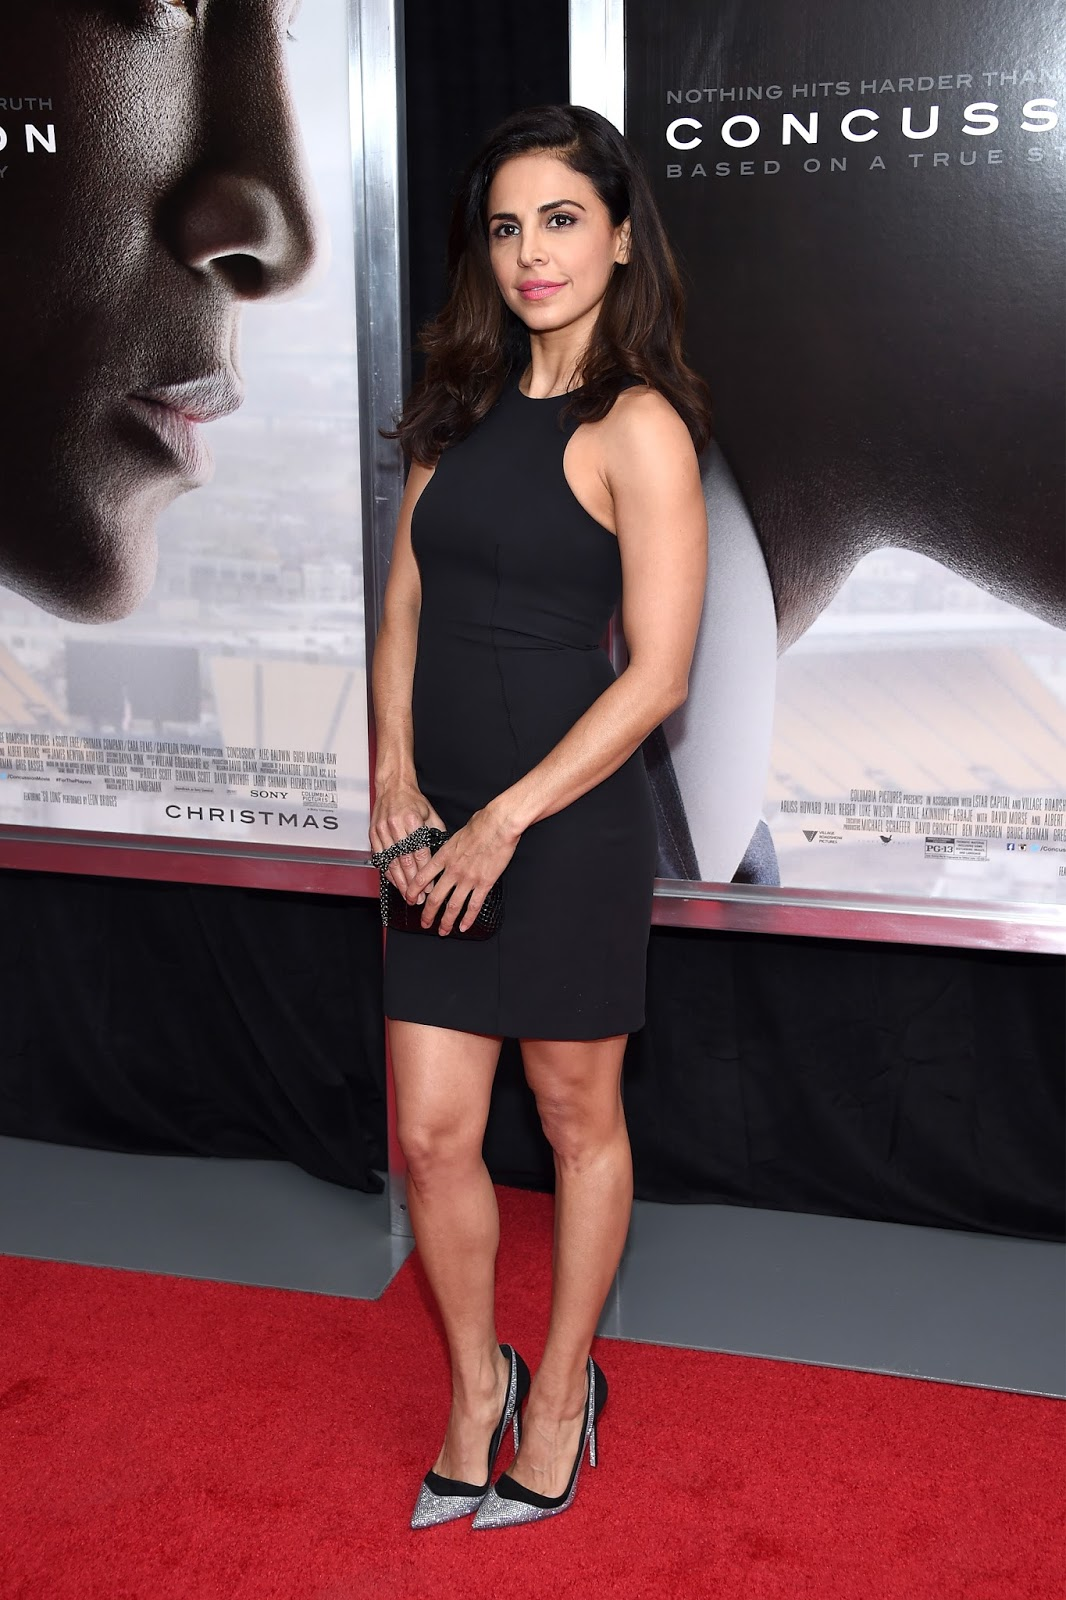 """Afghan actress Azita Ghanizada attends the """"Concussion"""" Premiere in New York"""